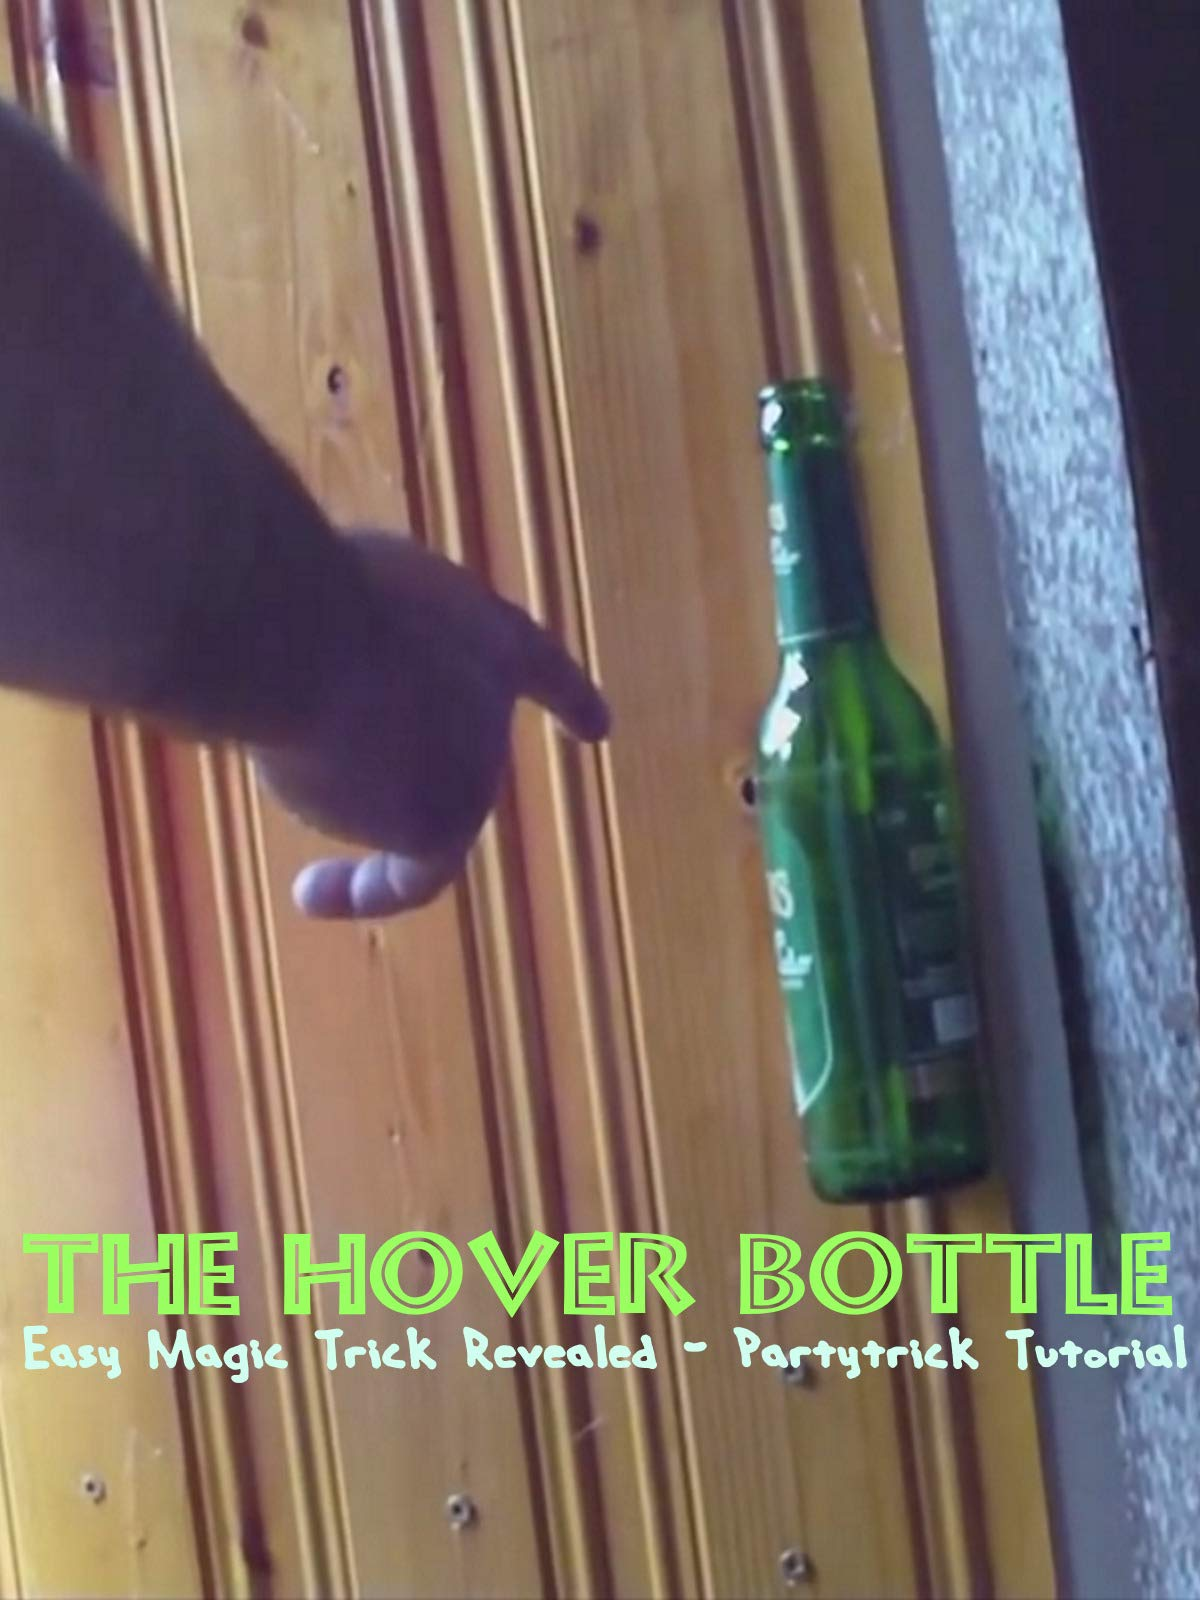 The Hover Bottle - Easy Magic Trick Revealed - Partytrick Tutorial